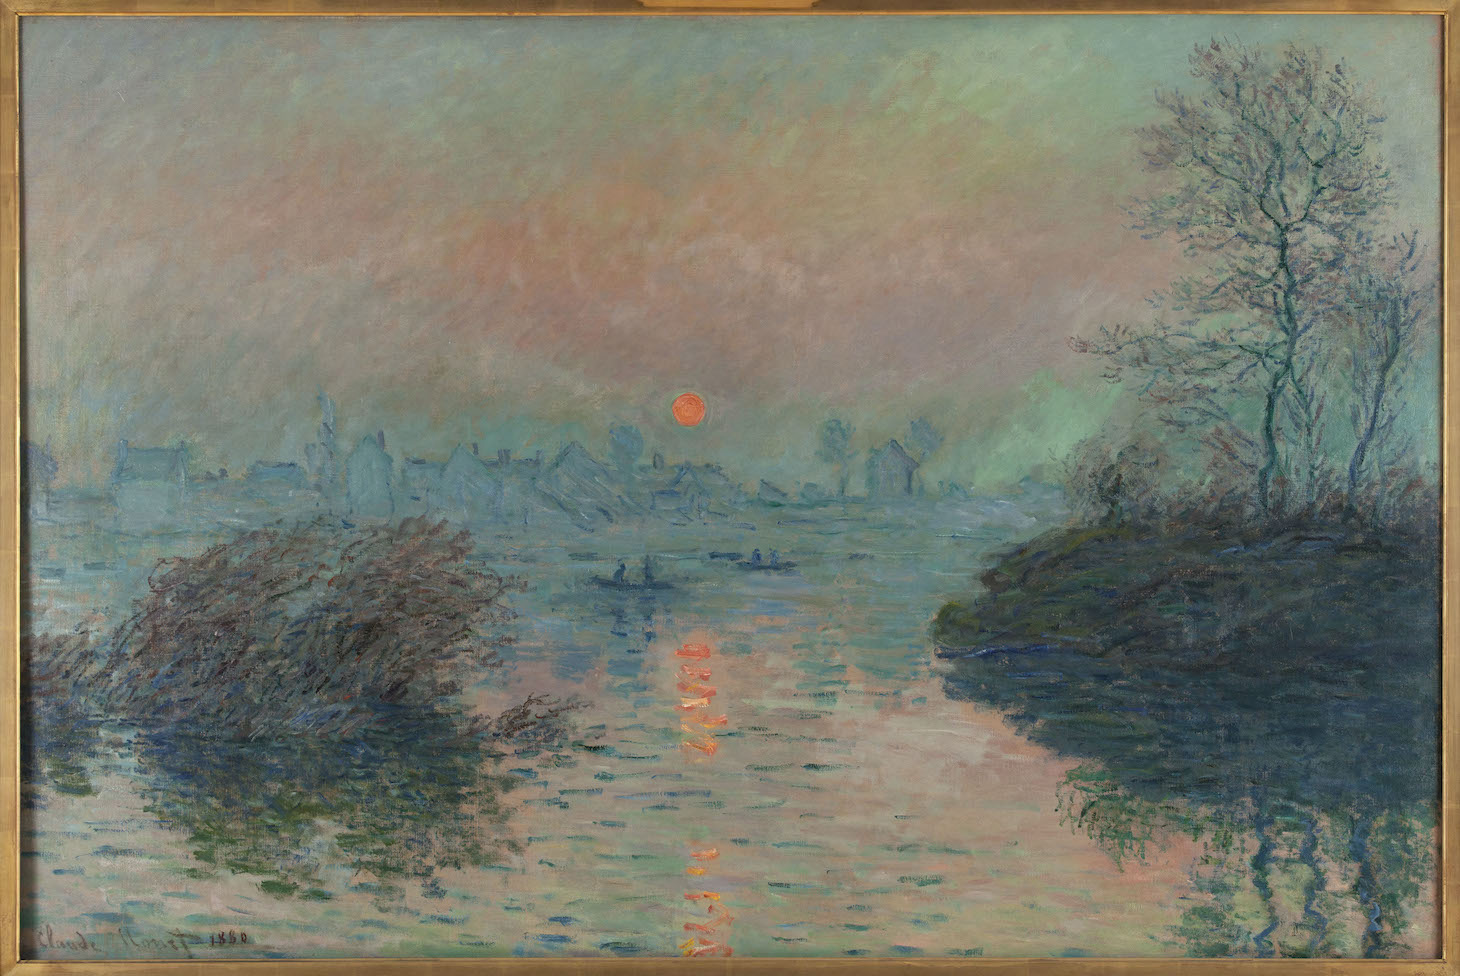 """Setting Sun on the Seine at Lavacourt"" by Claude Monet (1880), oil on canvas, part of the collection at Petit Palais, Paris"